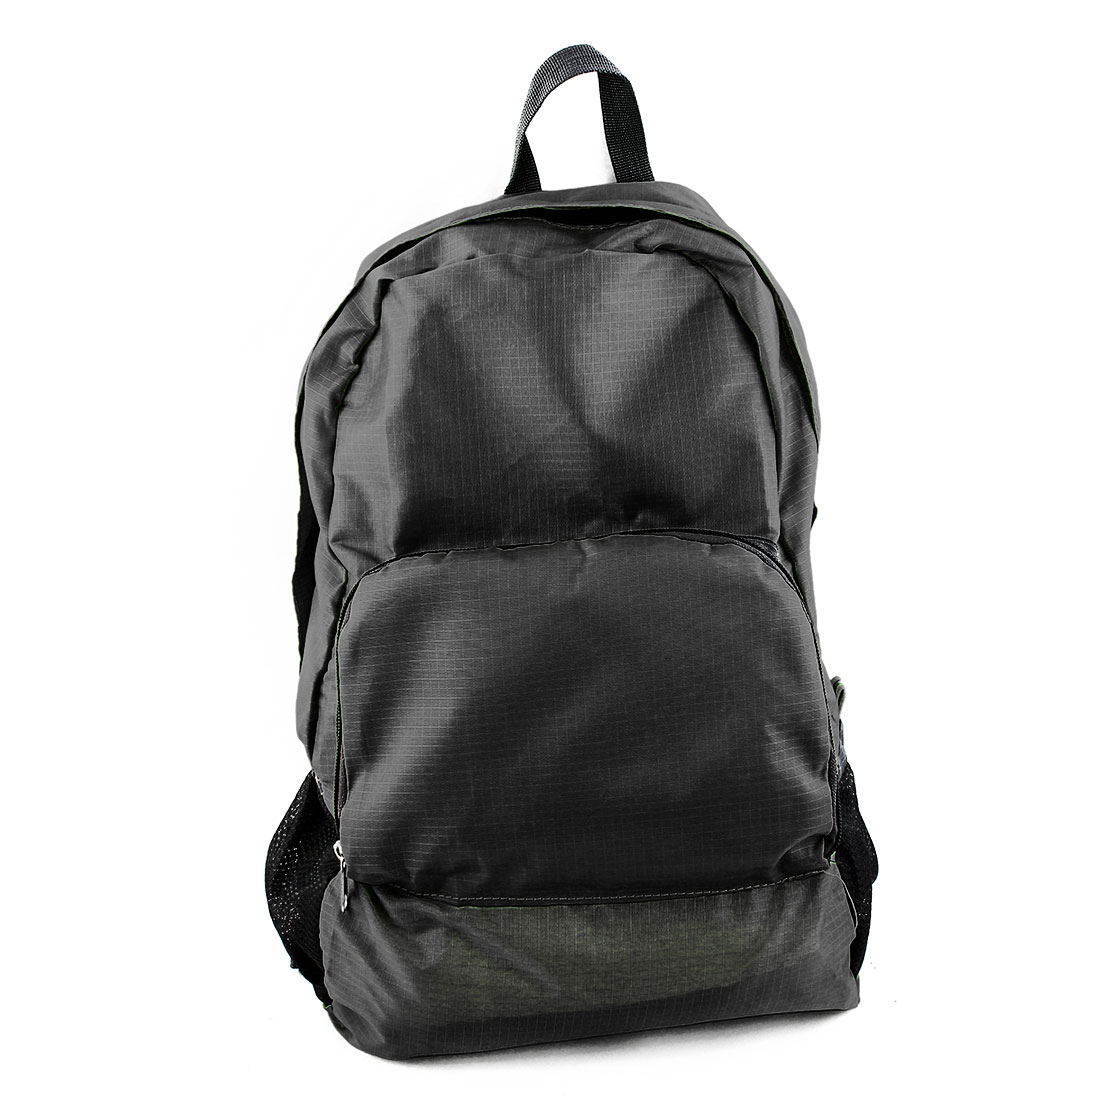 Lightweight Packable Pack Outdoor Travel Backpack Hiking Camping Daypack Sport Bag Black 20L